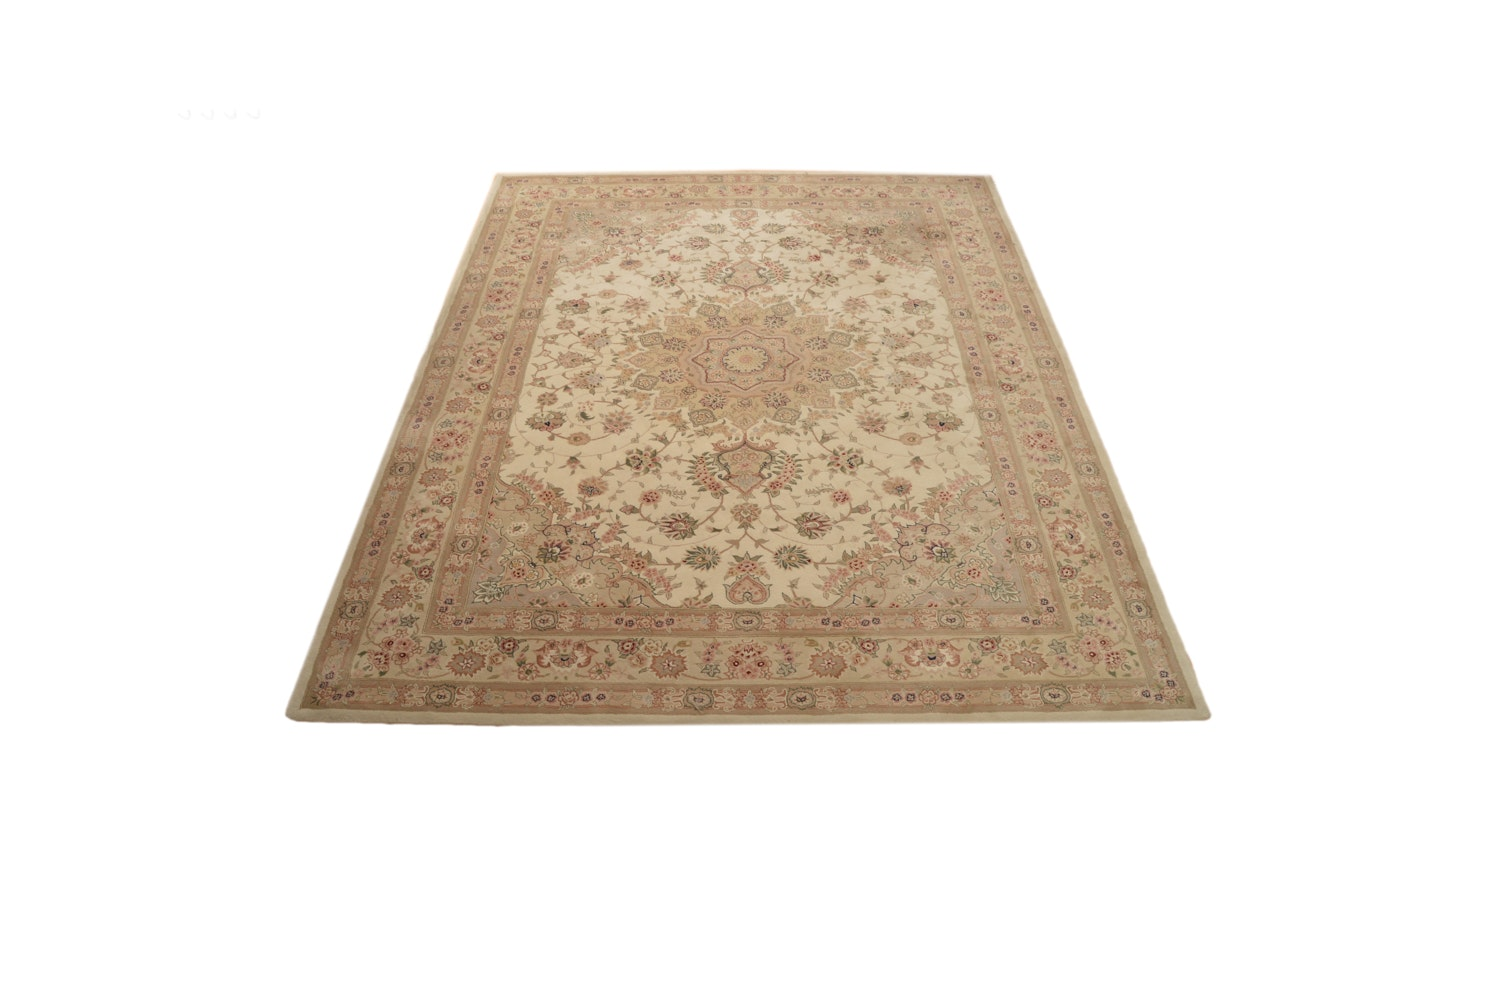 Tufted Indo-Persian Tabriz Style Area Rug